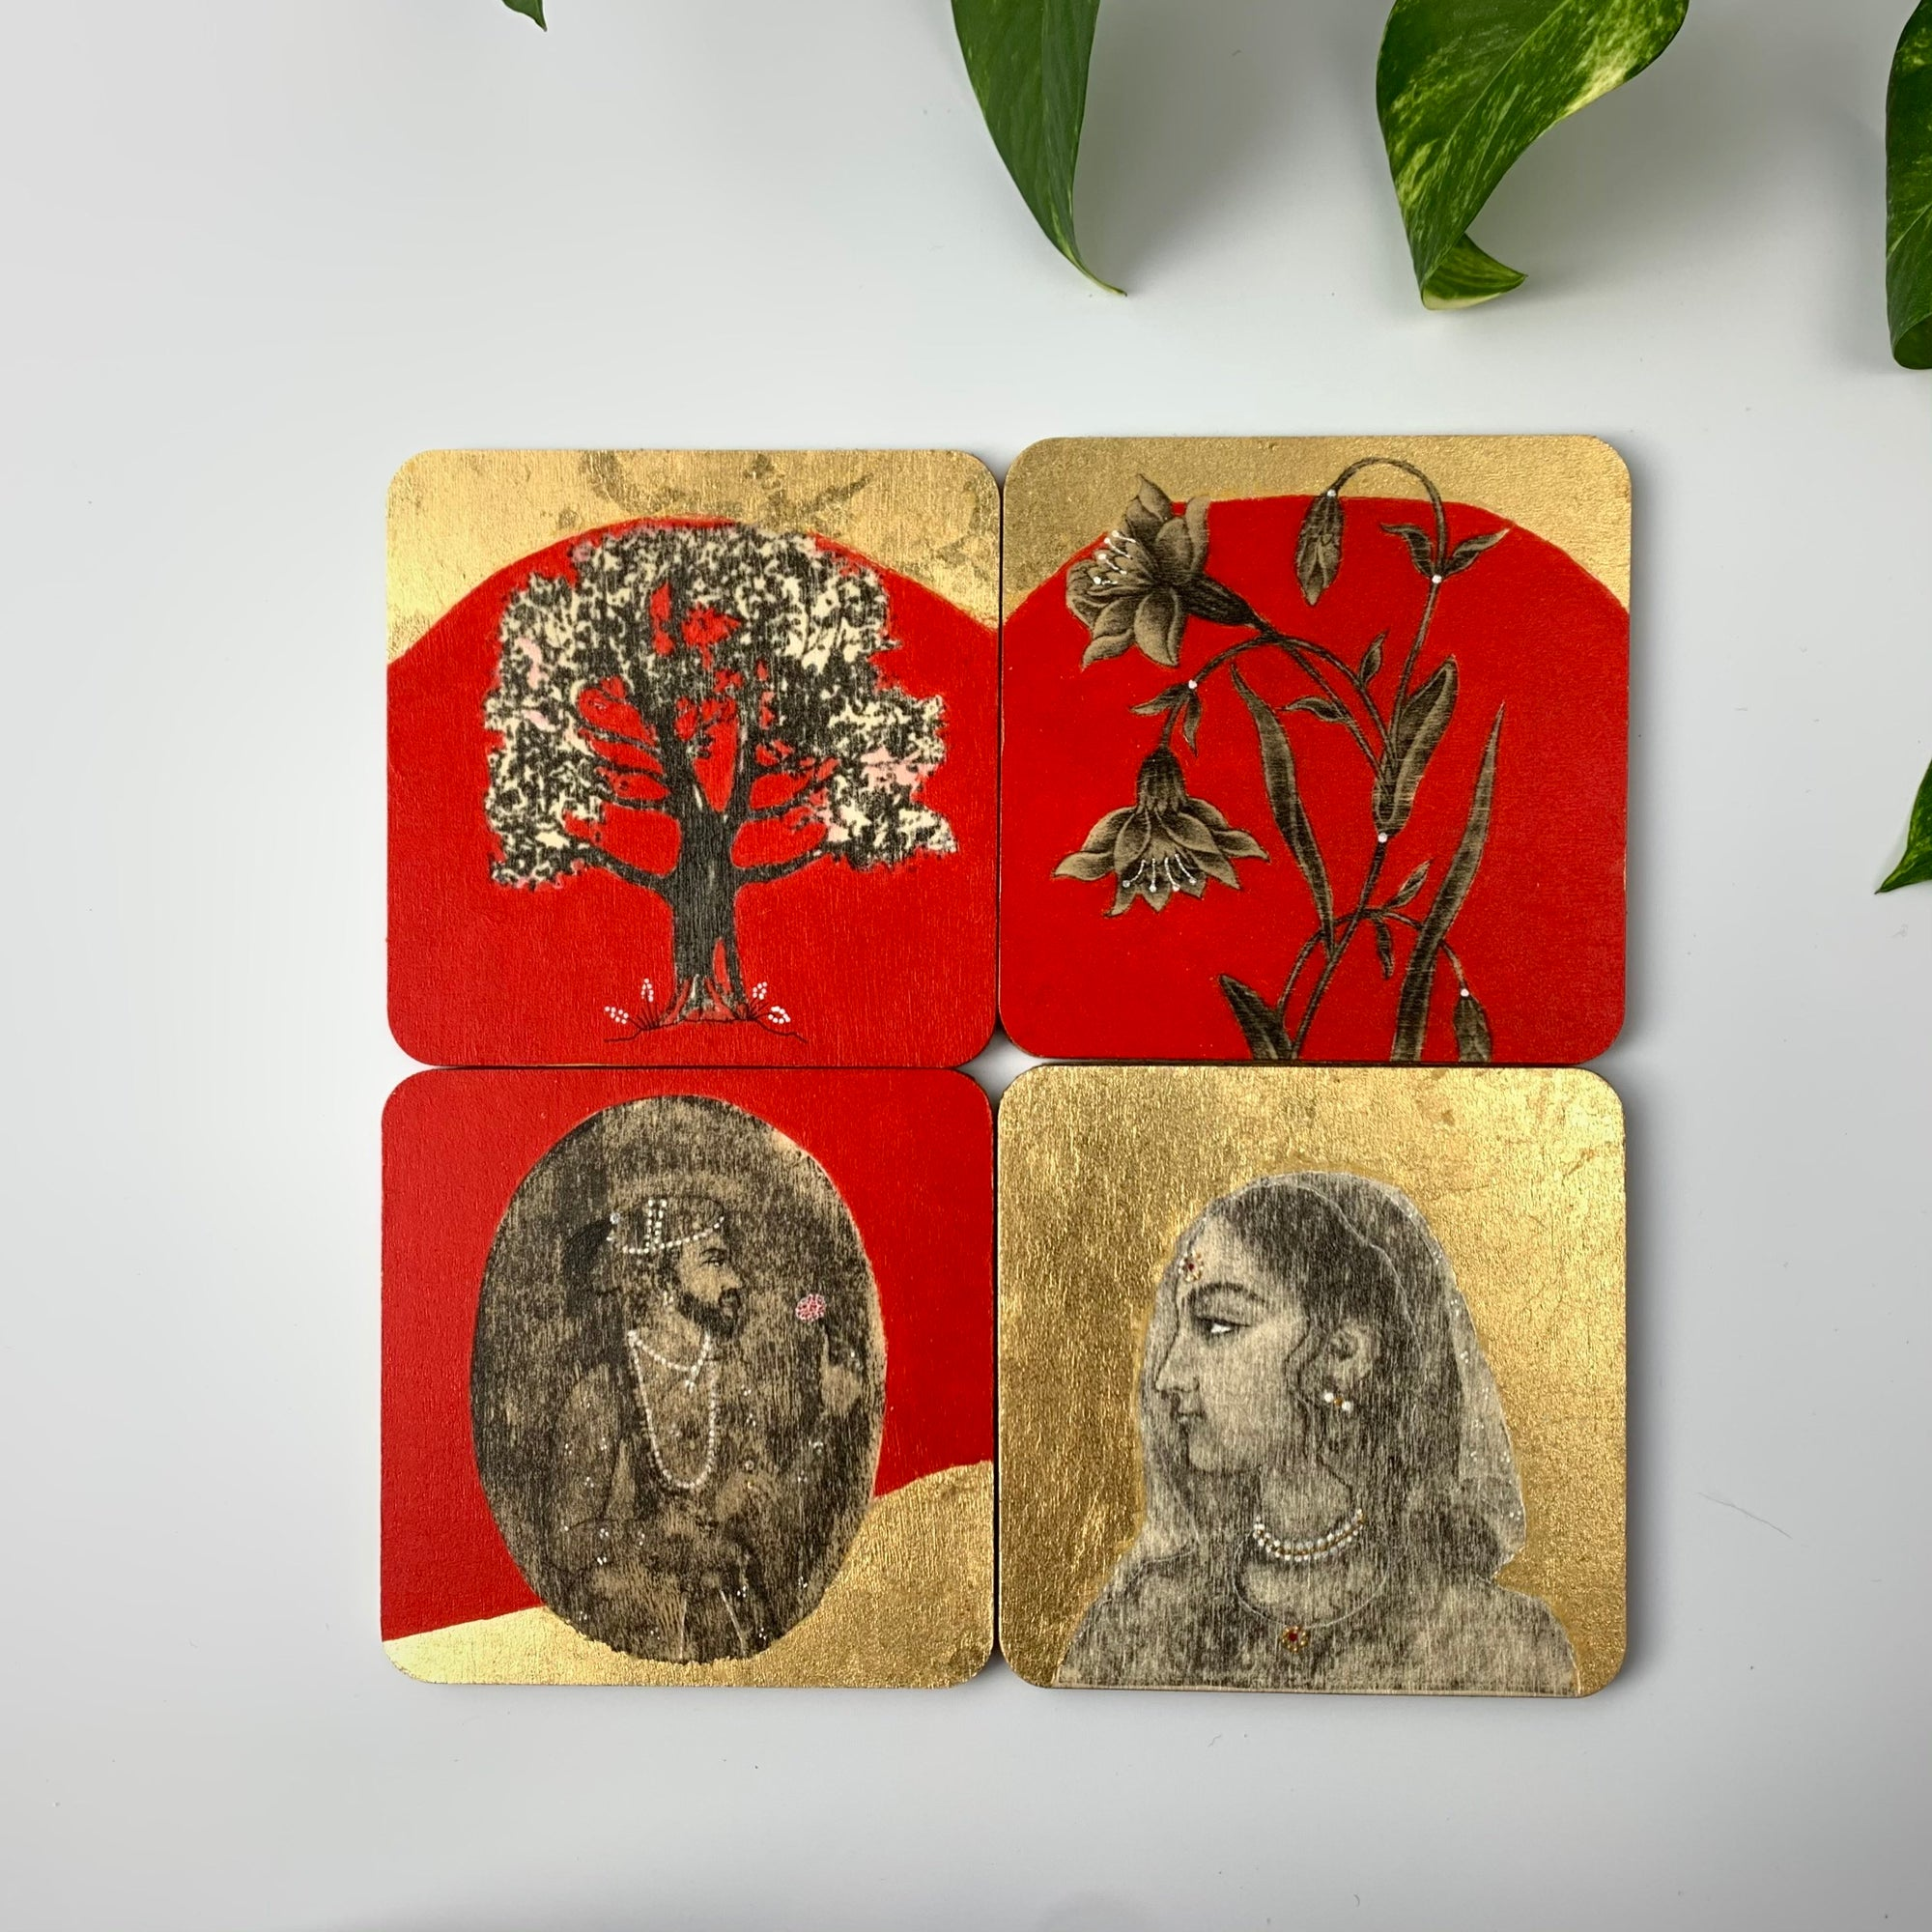 Coaster 06_Raja Rani _Set of 4 Coasters